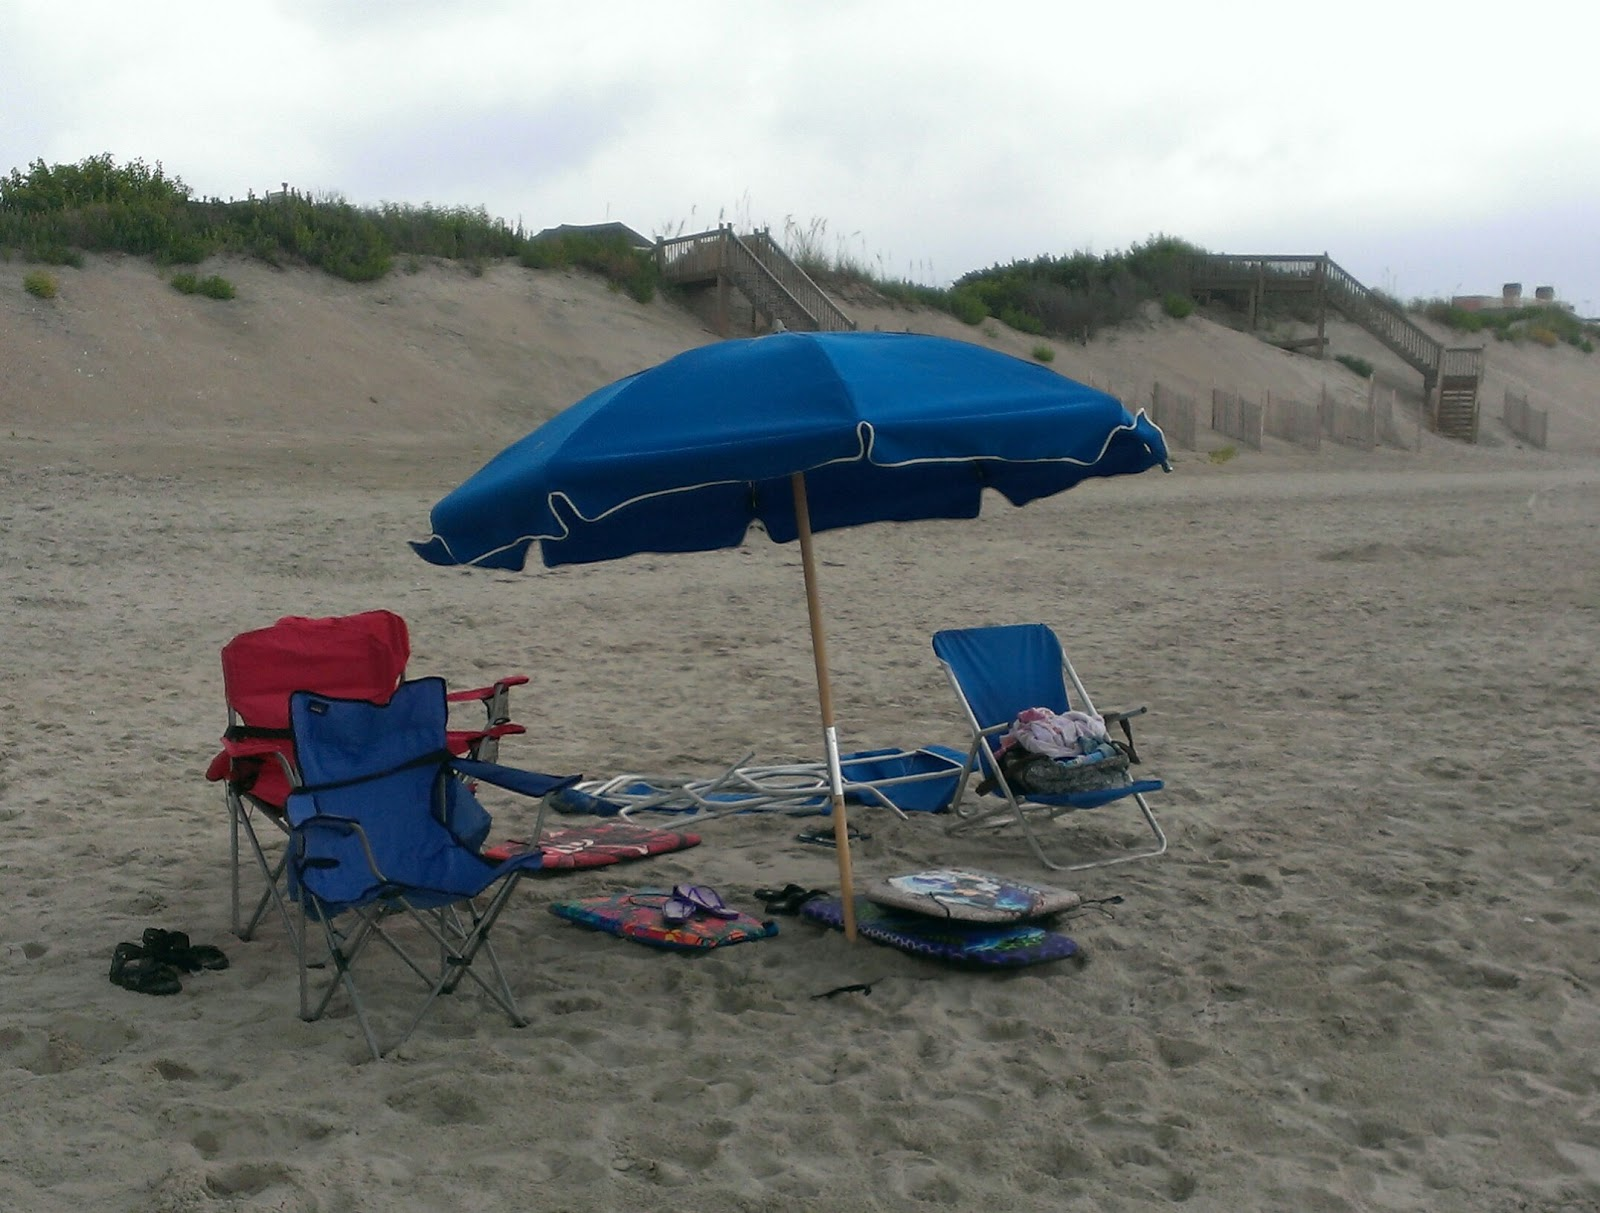 Chairs and an umbrella at the beach